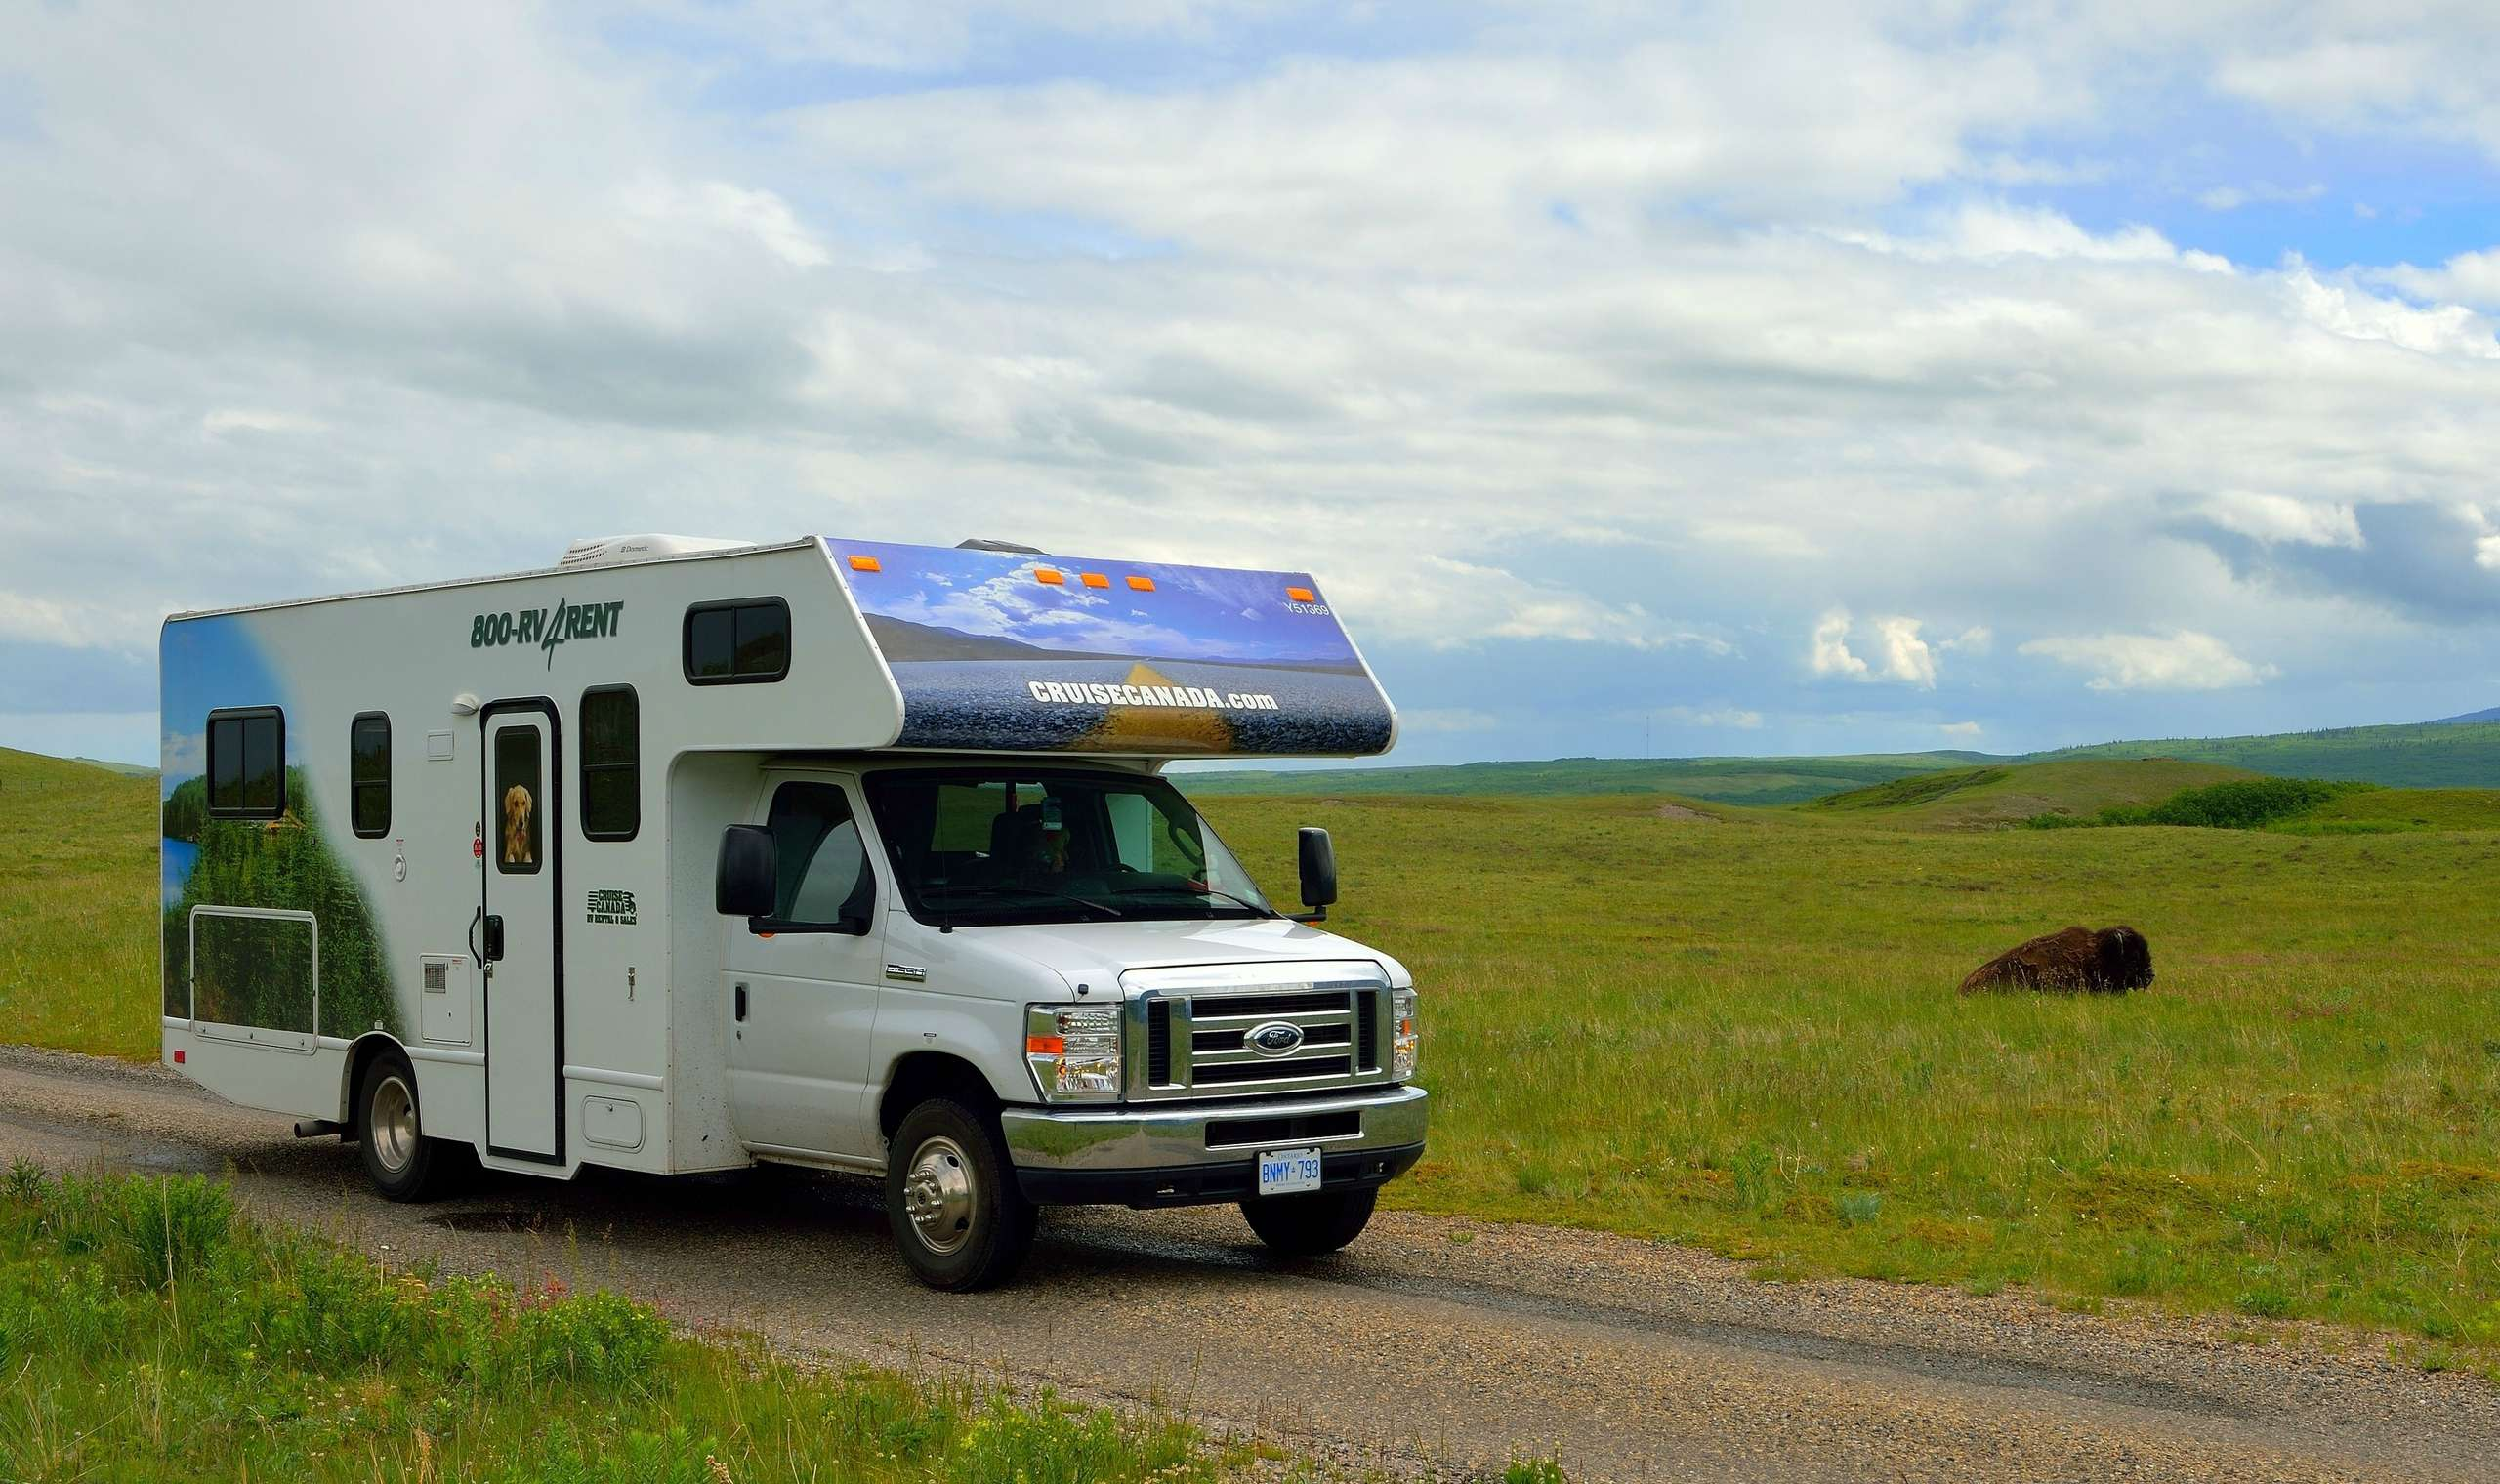 Cruise America, together with sister company Cruise Canada, is the largest motorhome supplier with the most rental locations and a fleet of over 4, vehicles. Through its sheer size Cruise America/Cruise Canada offers customer's excellent reliability and flexibility.